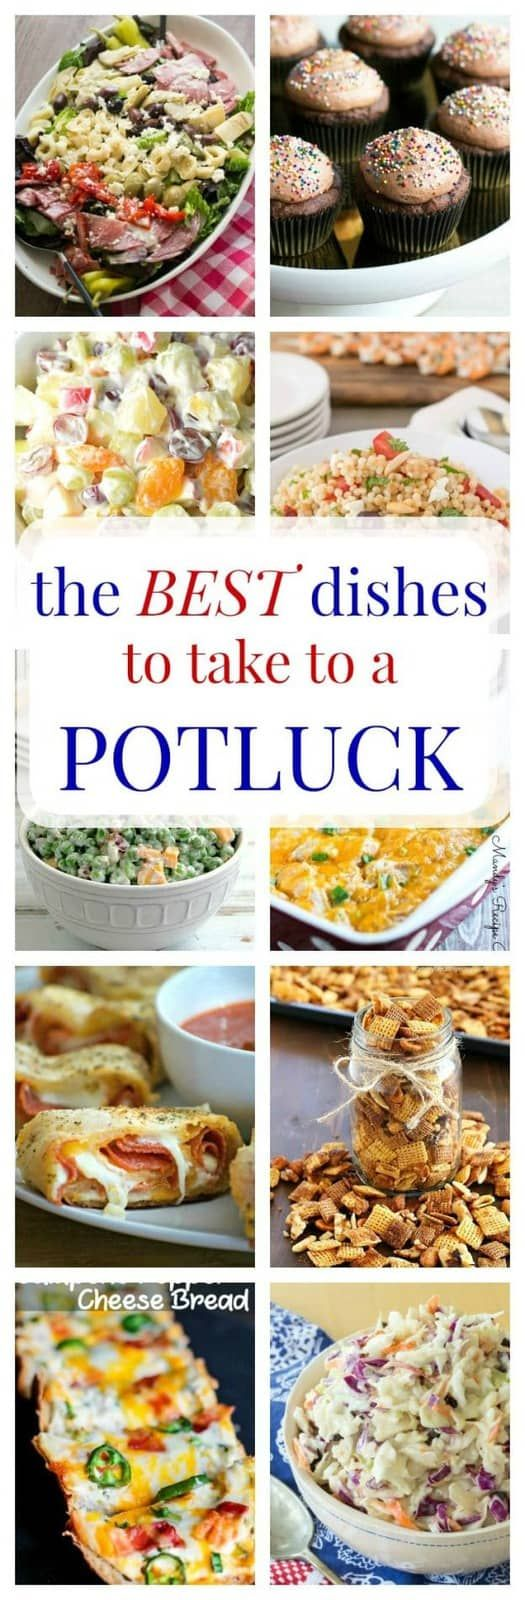 80+ of the Best Easy Potluck Dishes - Cupcakes & Kale Chips